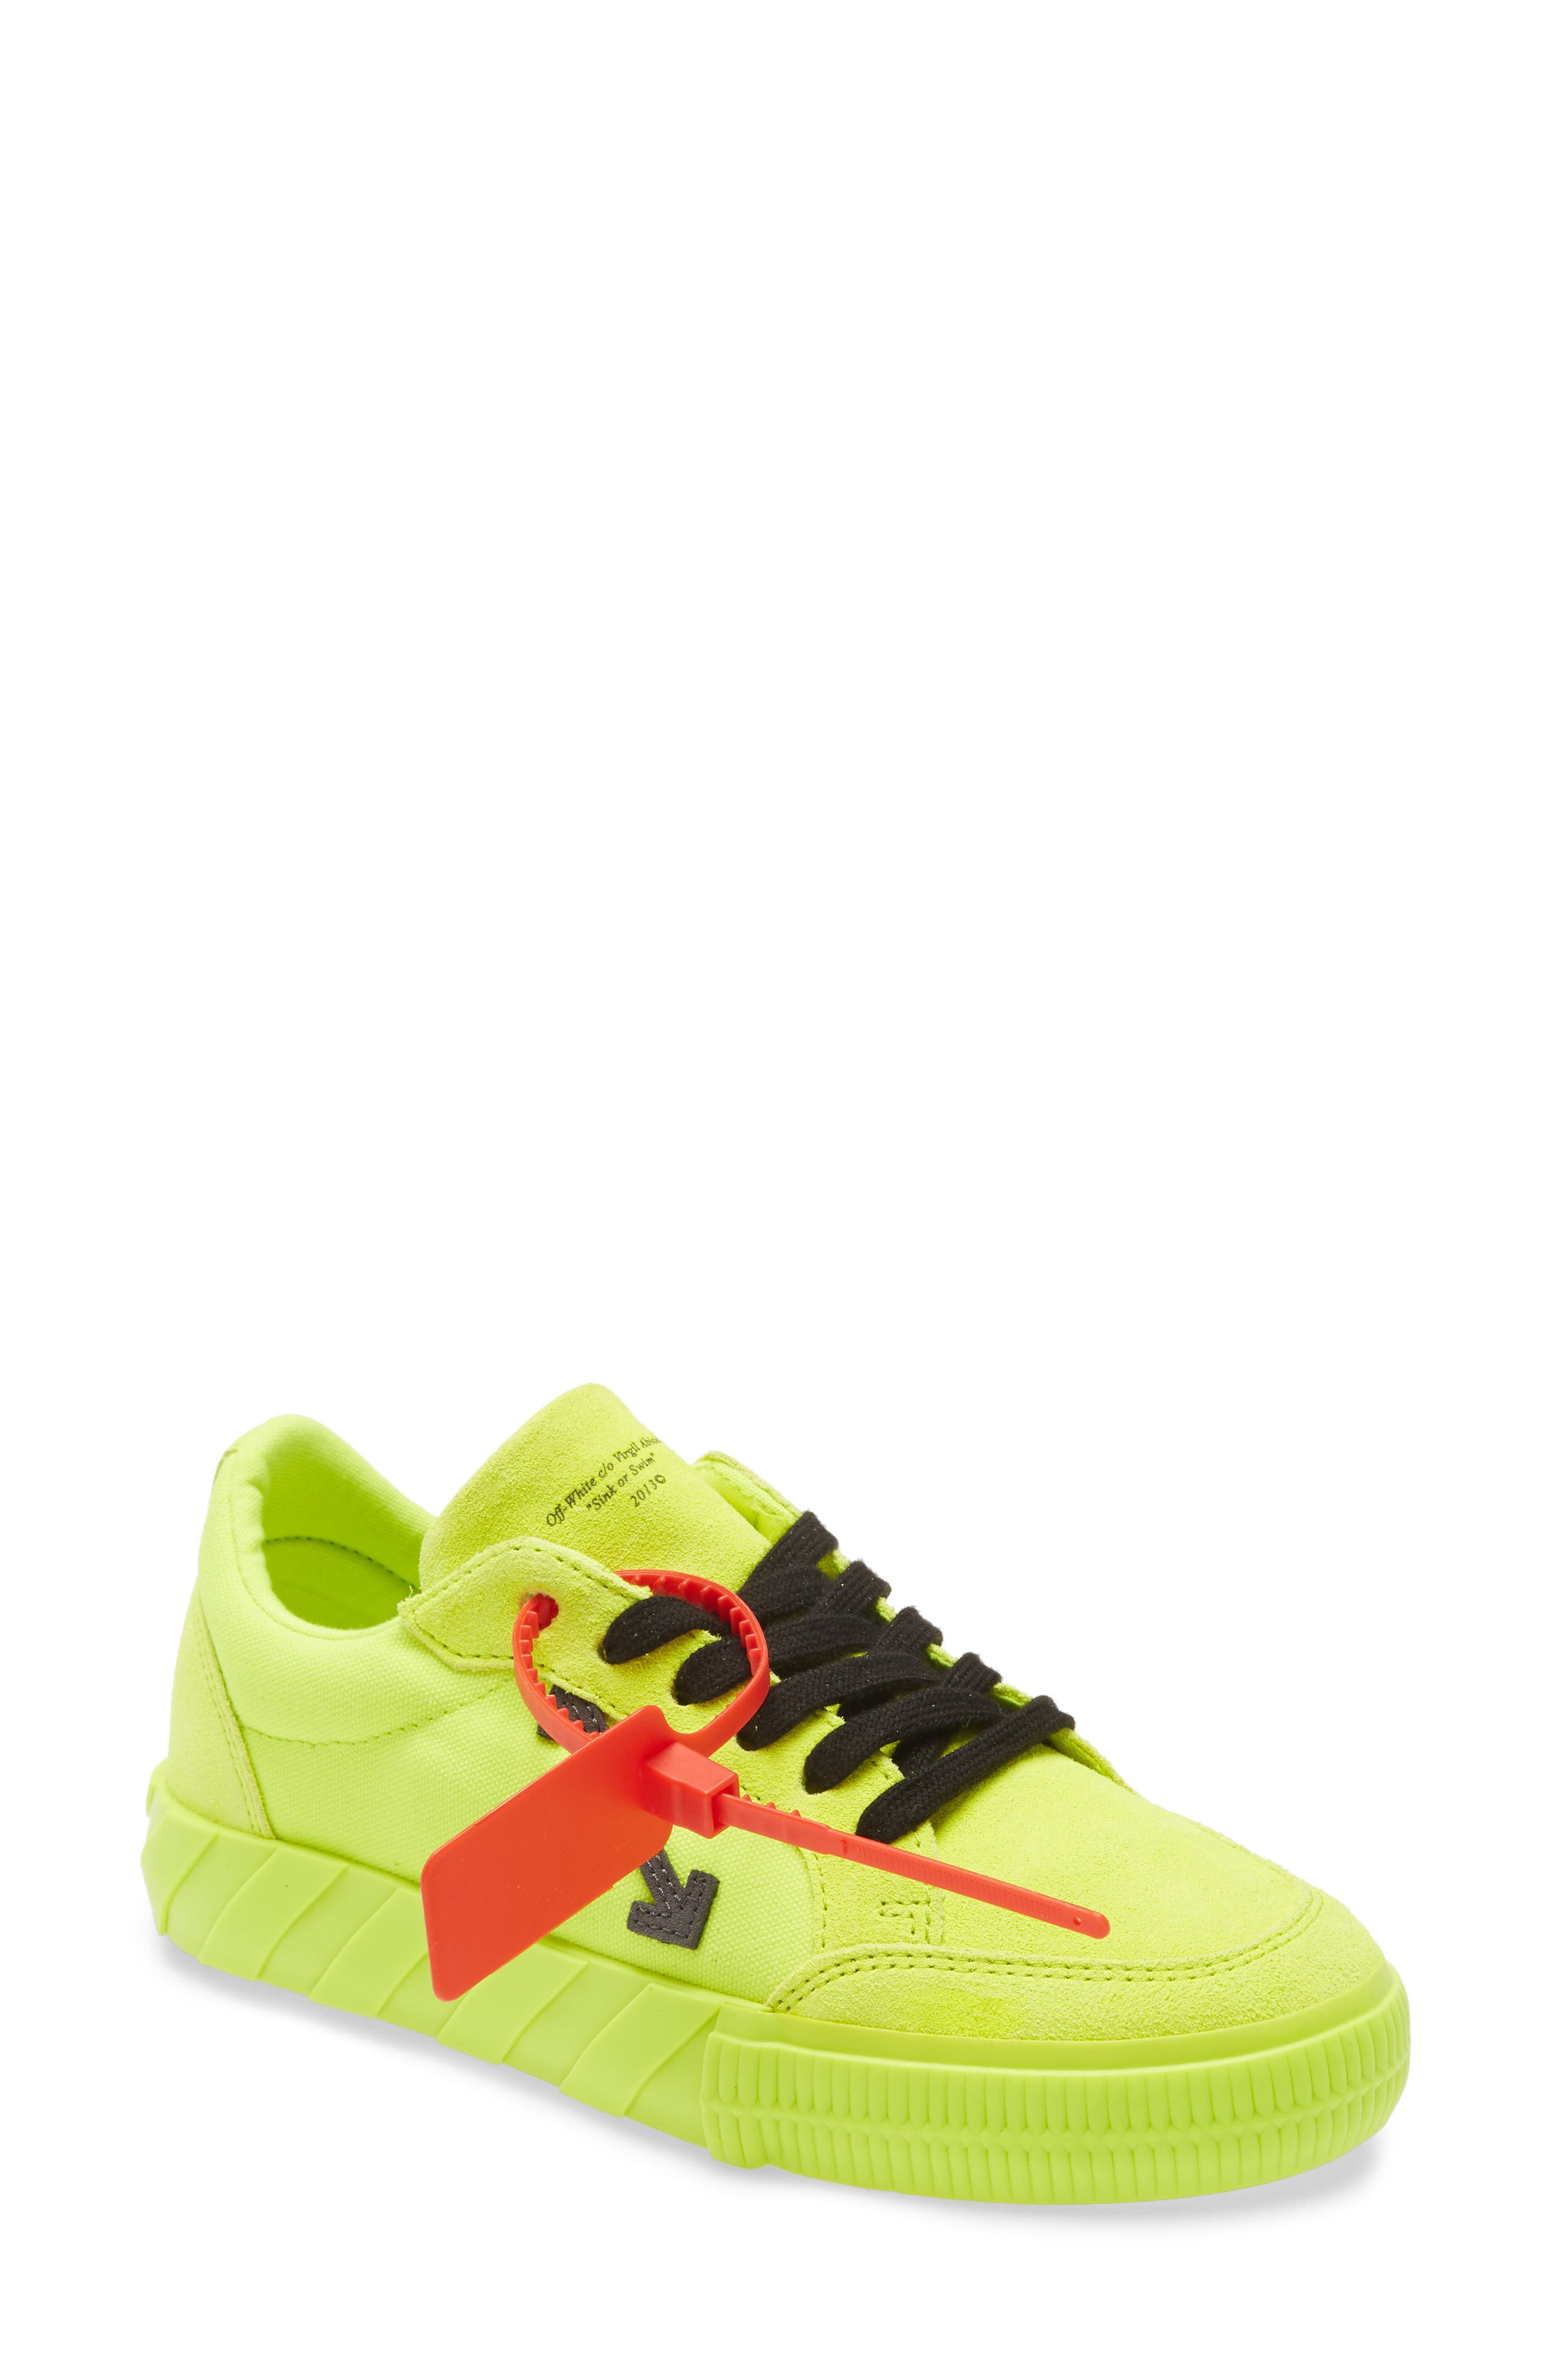 Women's Yellow Off-White Shoes | Nordstrom